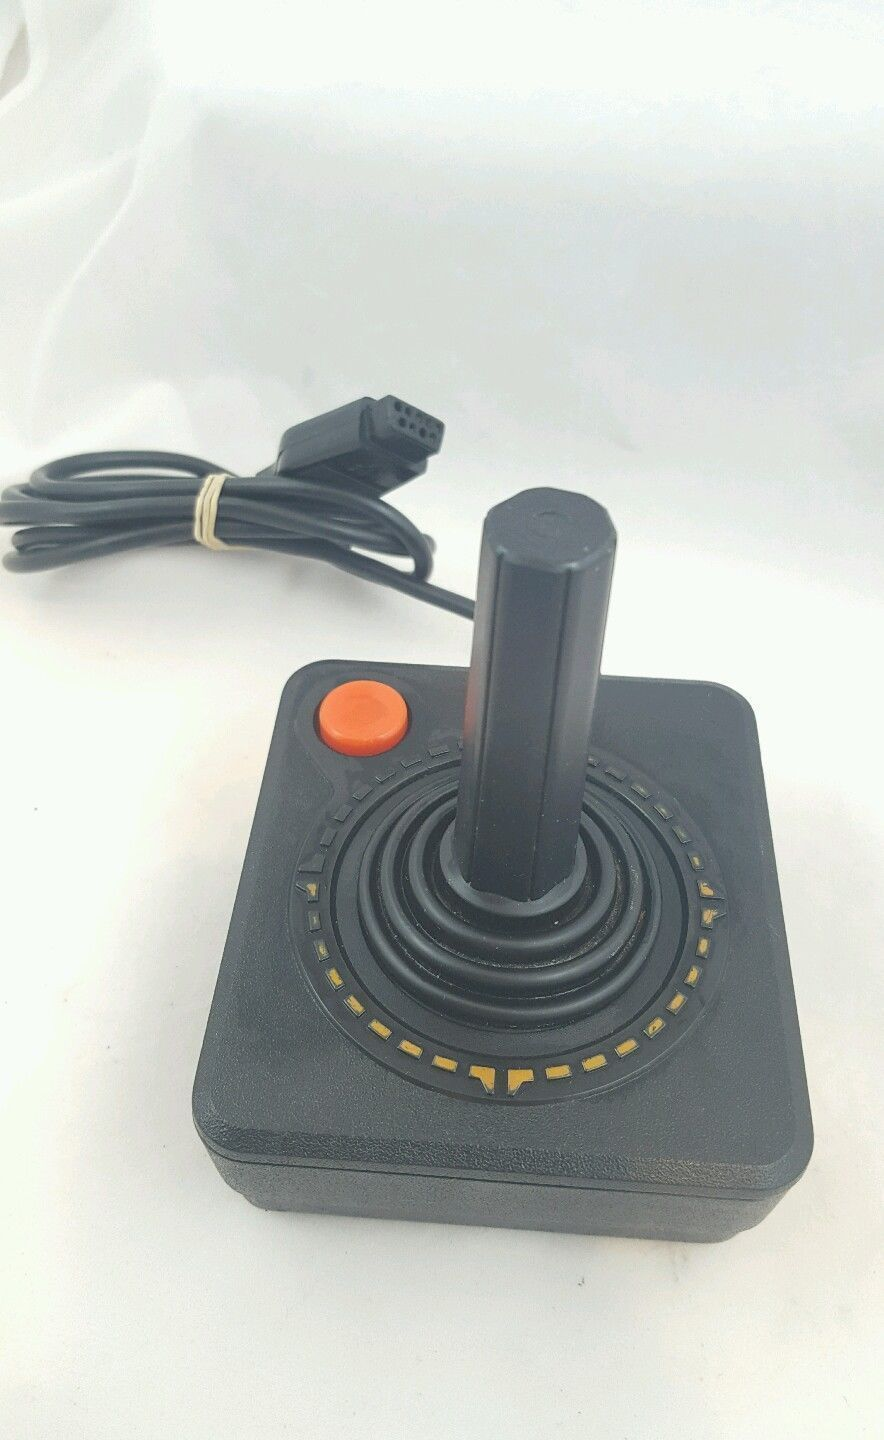 Atari cx 40 joystick controller home video system game 2600 console flashback 2 for sale item - Atari game console for sale ...